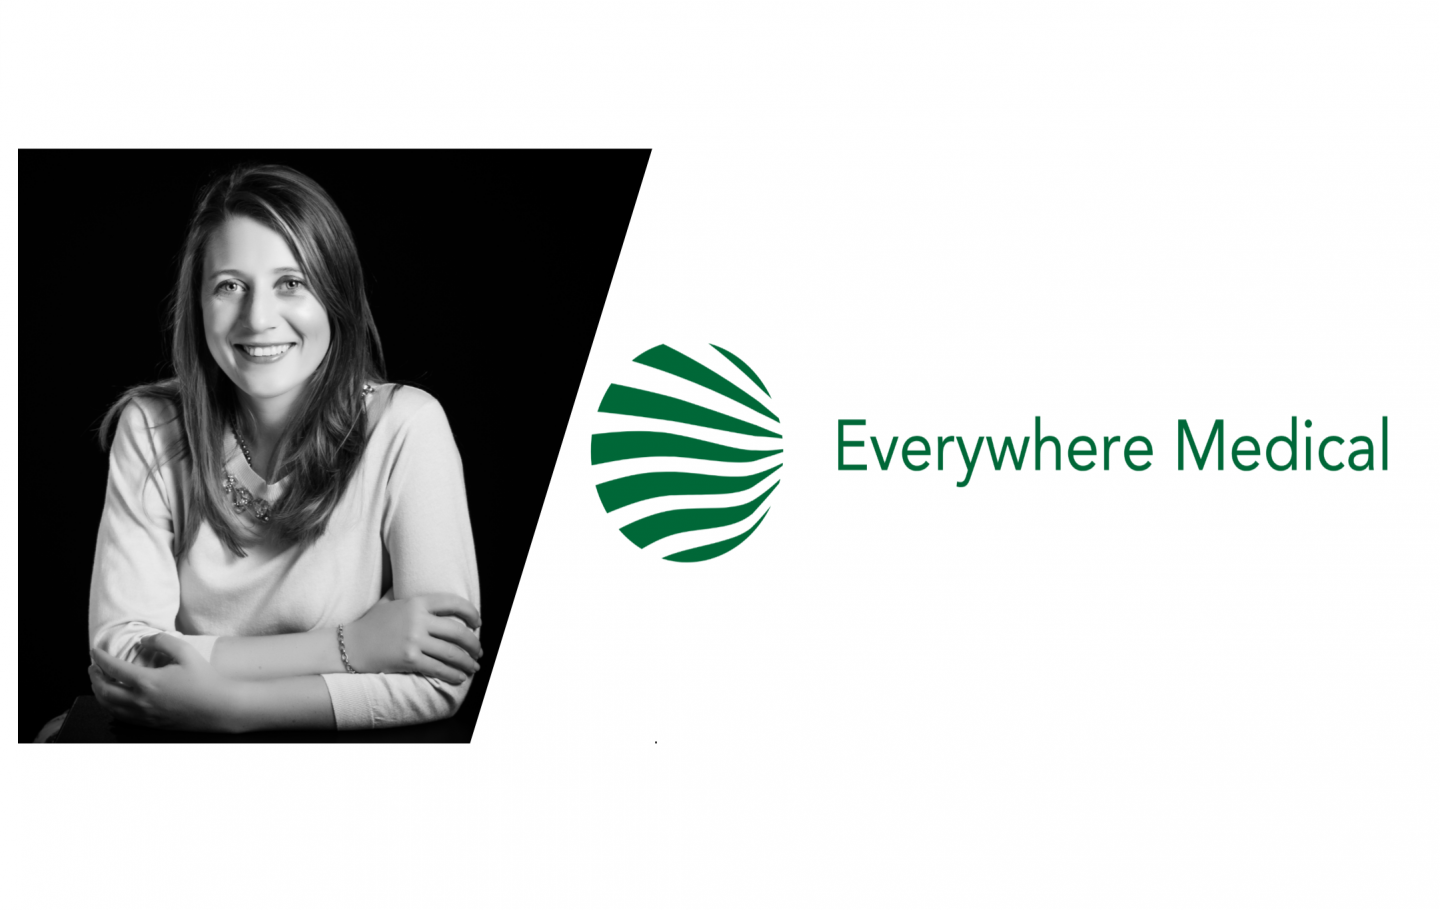 Christina O'Dwyer CEO of Everywhere Medical is focused on developing the first leak proof ostomy appliance.